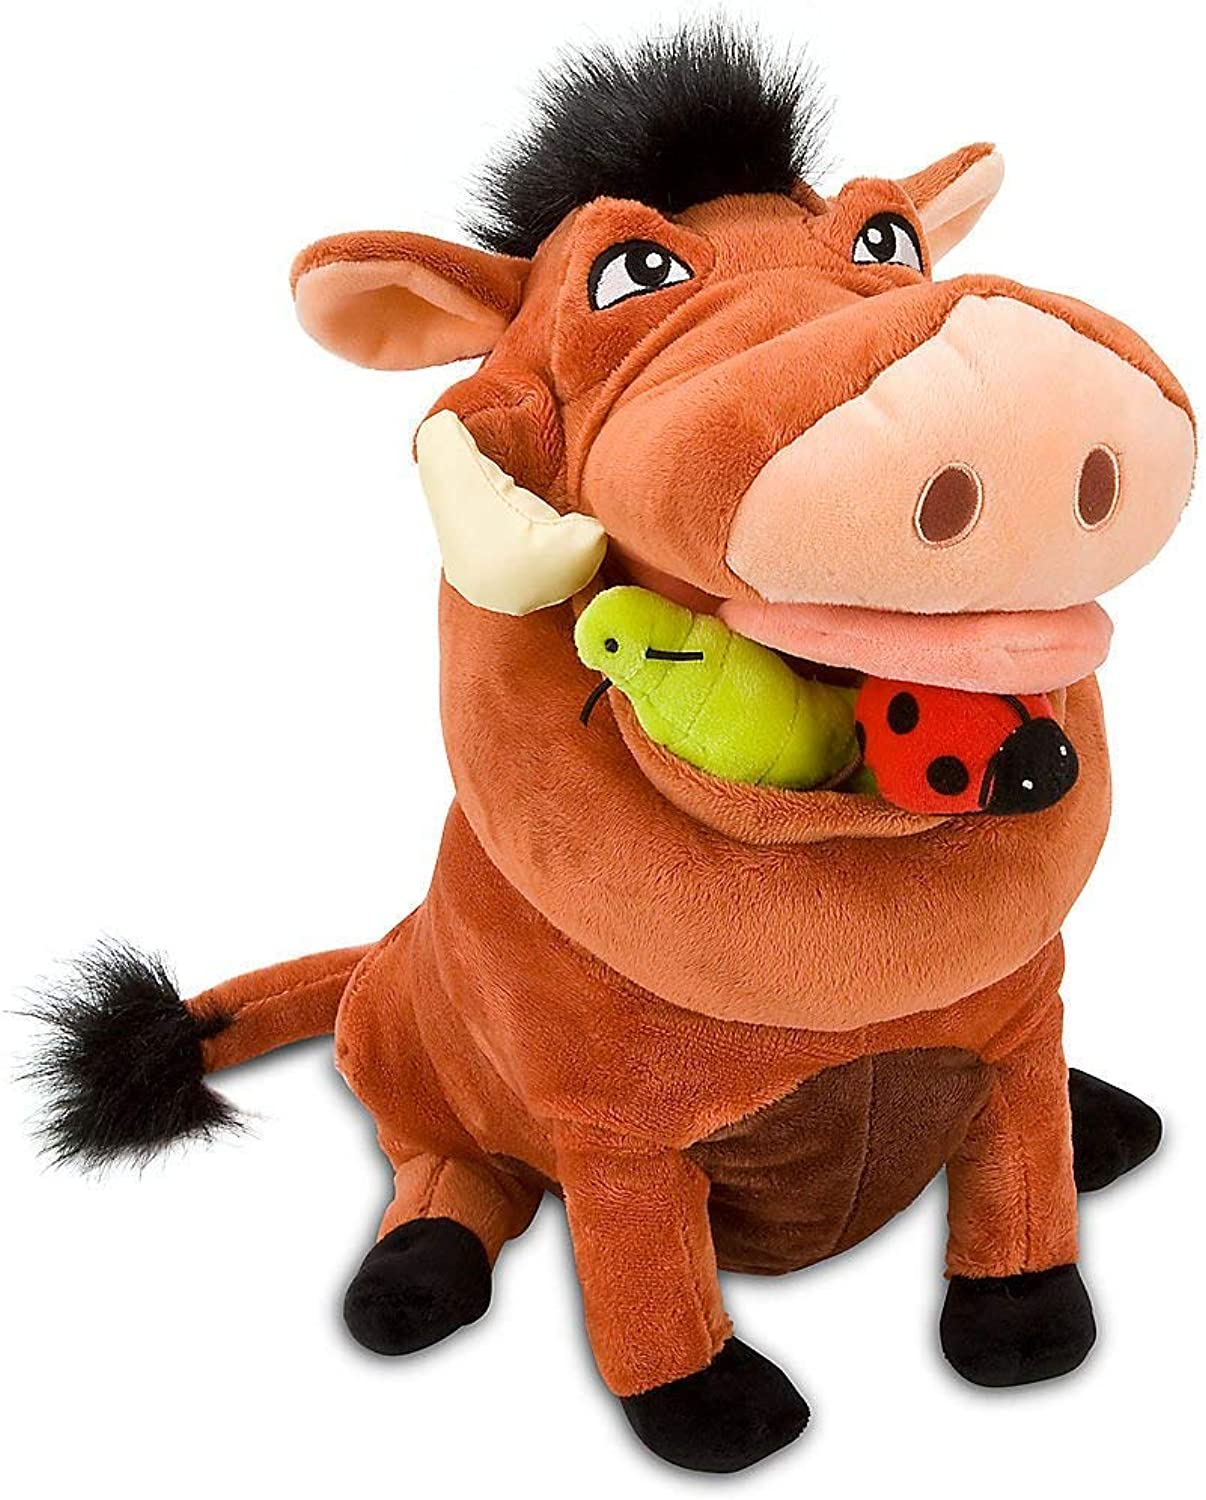 Disney - Pumbaa Plush - The Lion Guard - Medium - 12 1 2 - New with tags by Disney